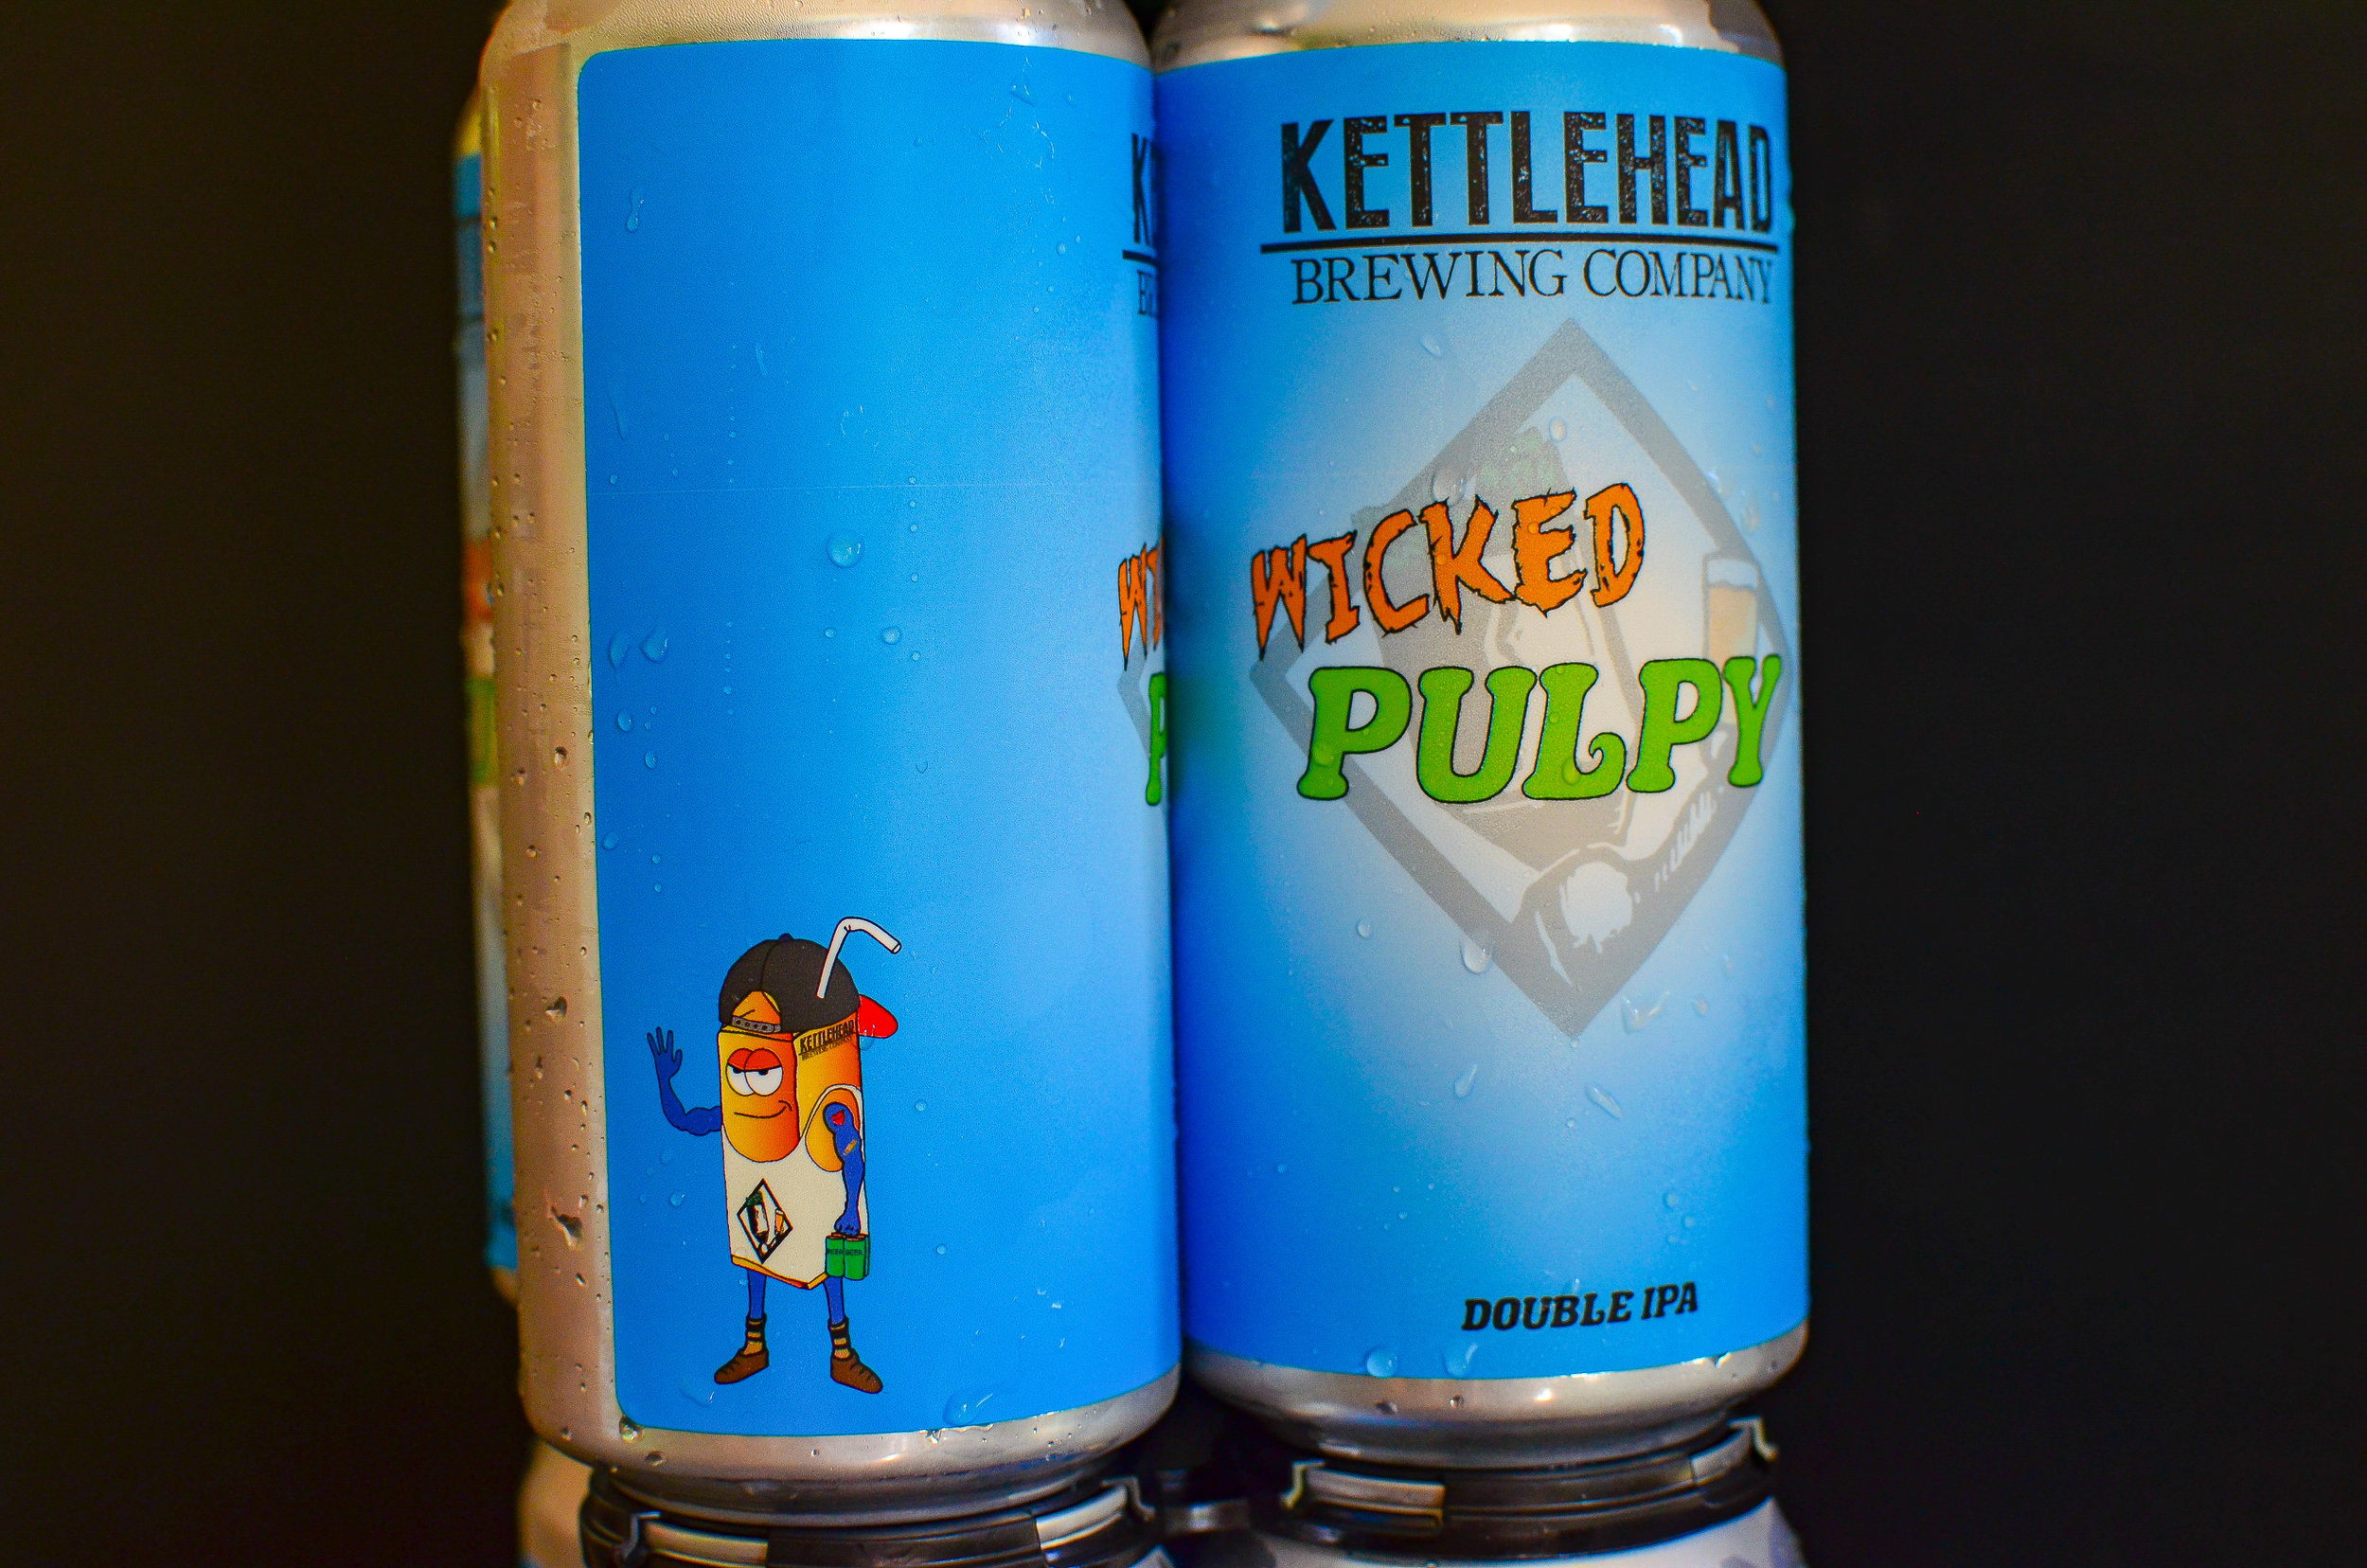 Wicked Pulpy, DIPA - Say hello to Wicked Pulpy, he's a big brother who's never lost at arm wrestling. He enjoys throwing caution to the wind when dry hopping and pushing DIPA's to the limit. If you're like him and like to live on the edge, this beer is for you.